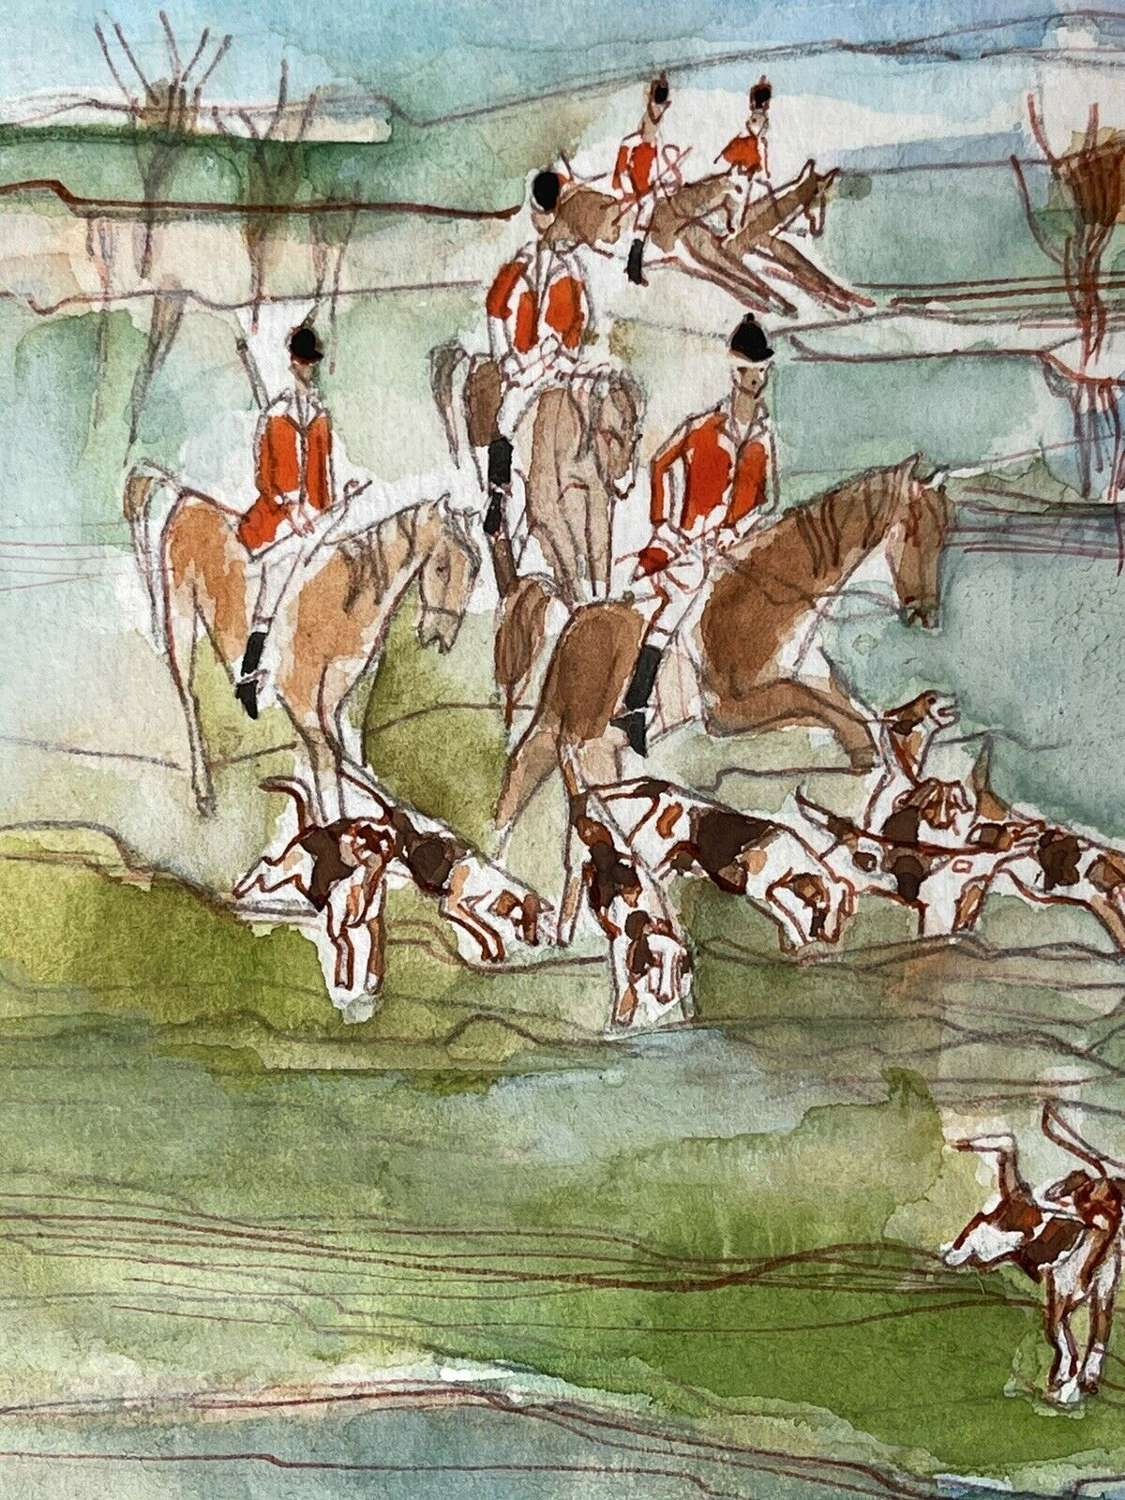 Hunting In Scotland By Molly Eckersdorff watercolour